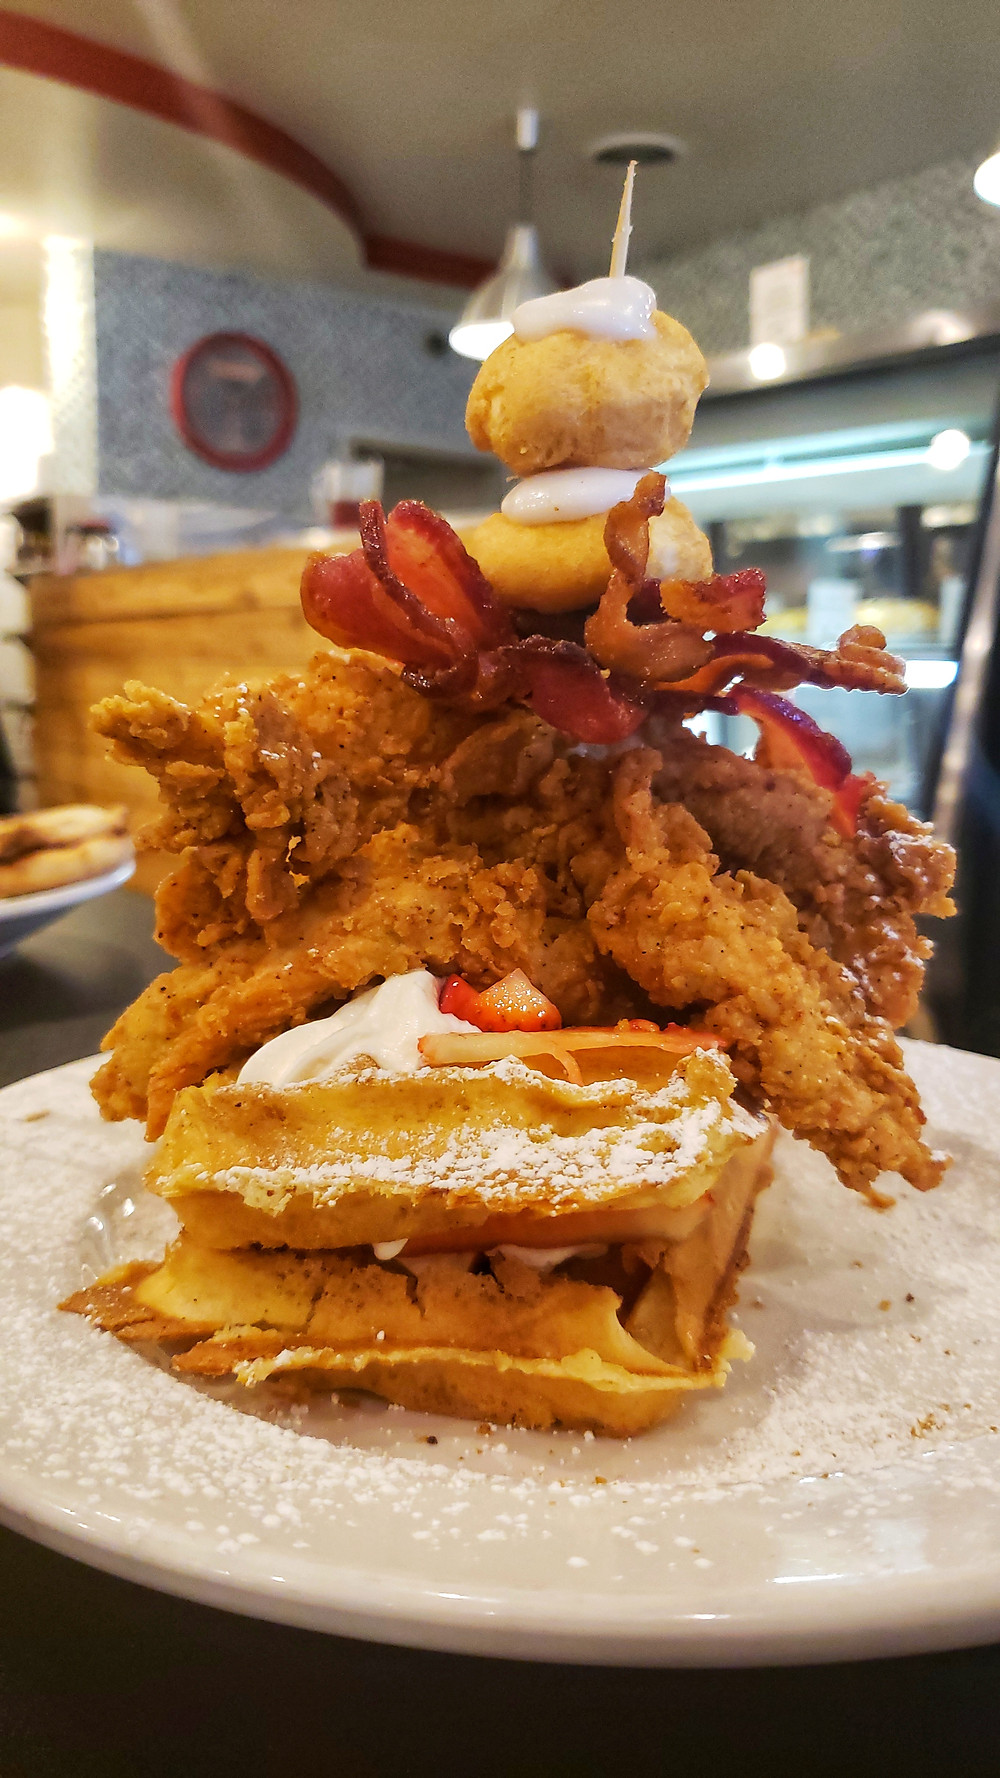 The Chicken, Bacon, and Waffles is not to be missed. Don't worry about the calories--just go for it!